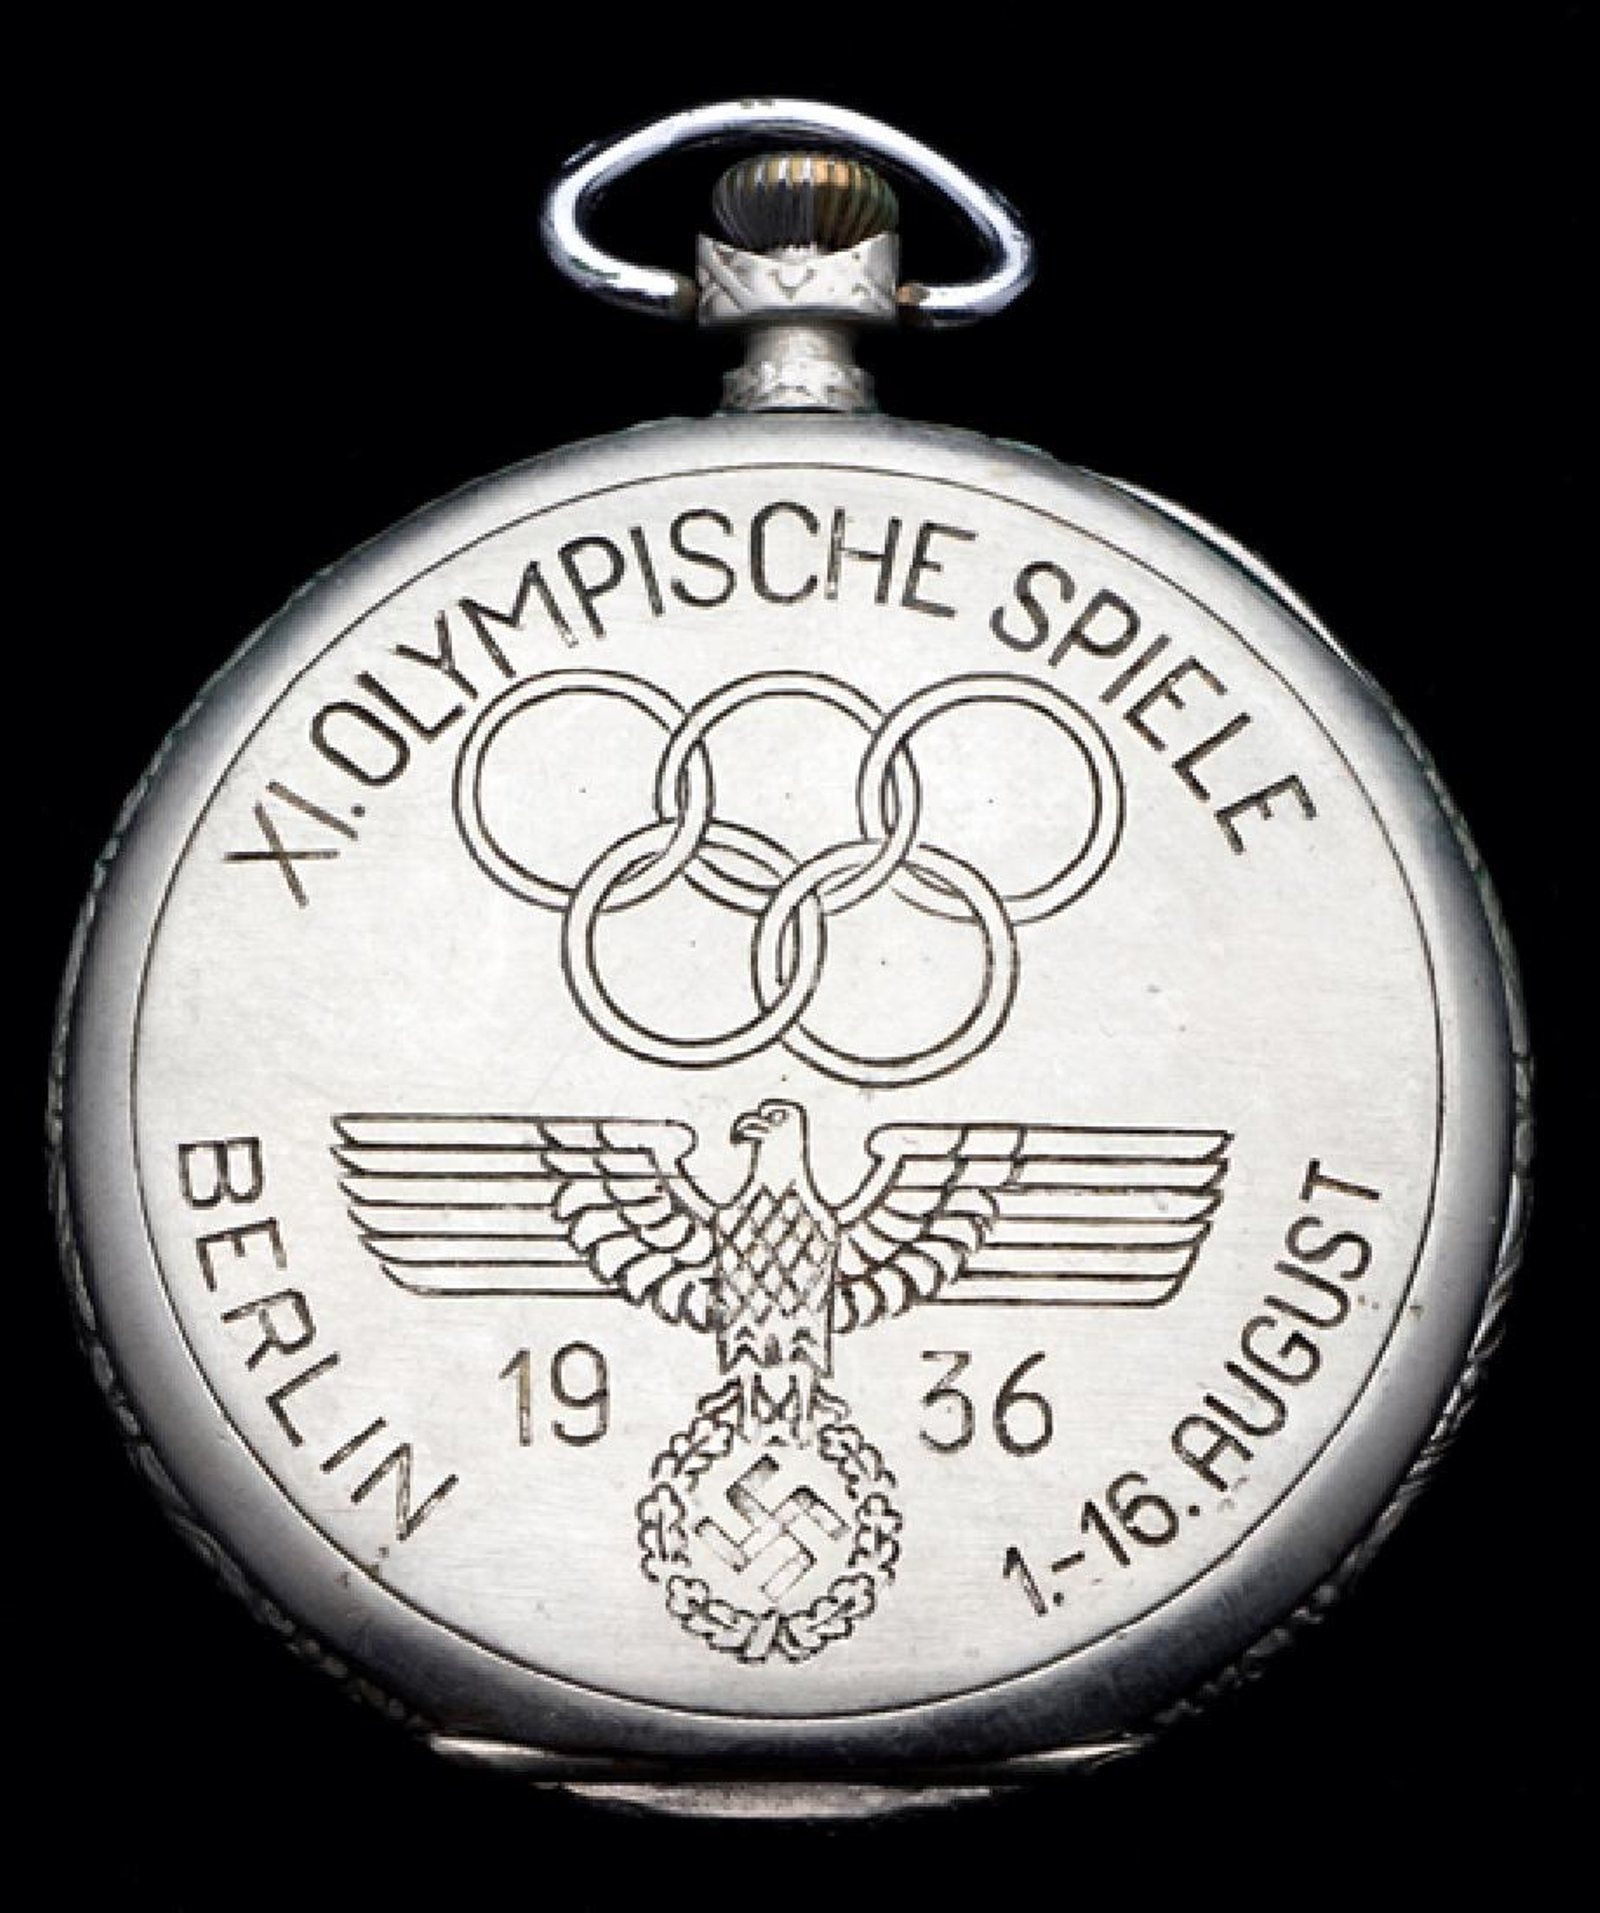 Berlin 1936 Olympic Games commemorative pocket watch 0138c43232